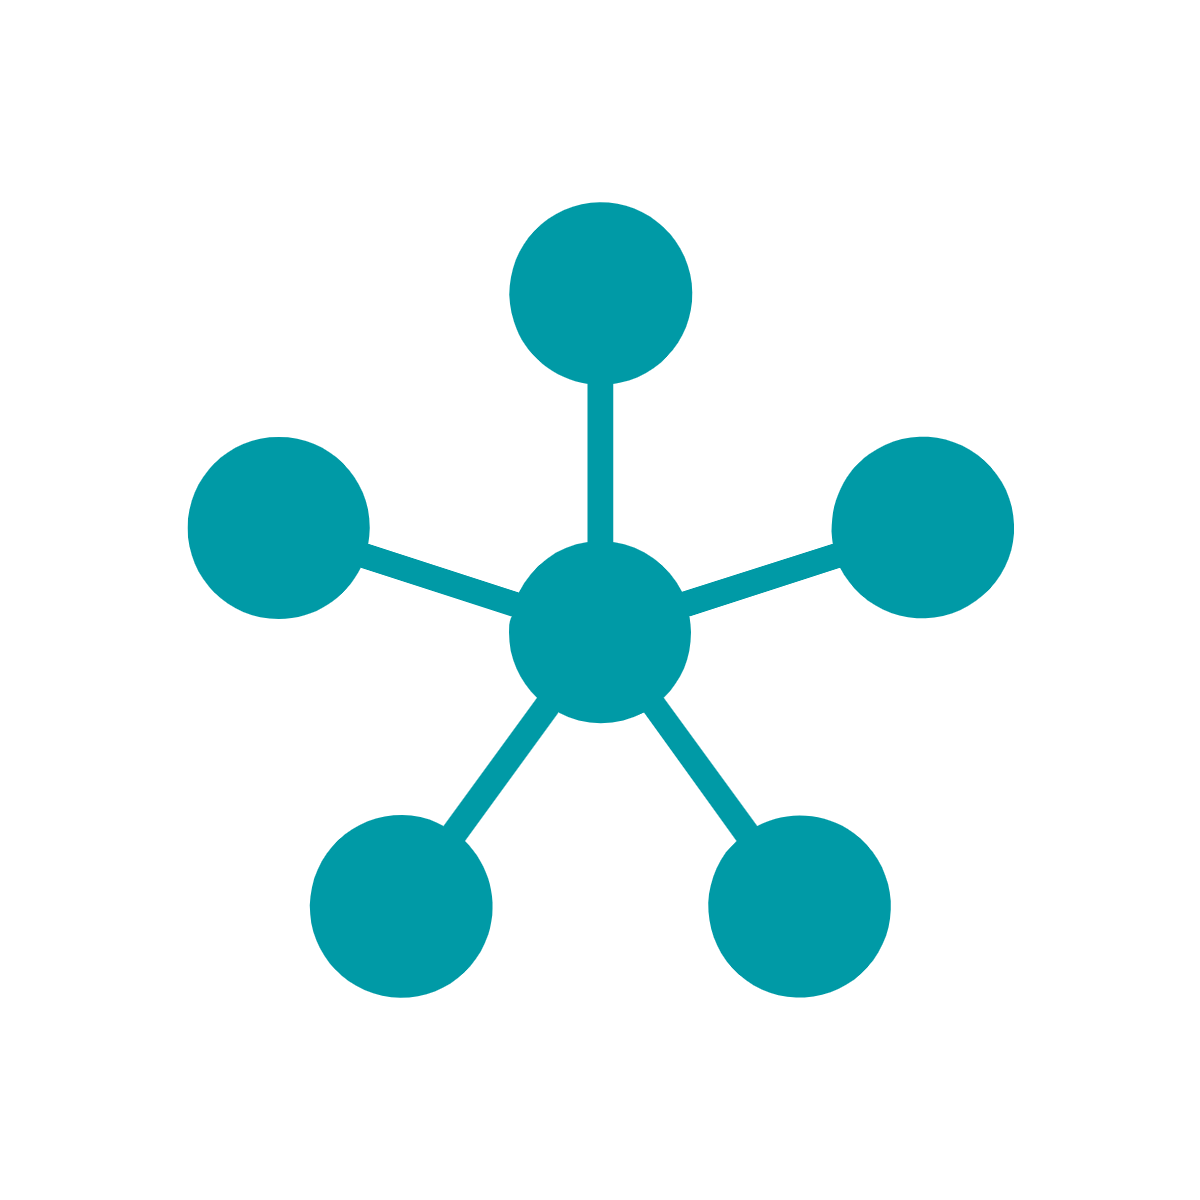 Green icon of connected dots in a network